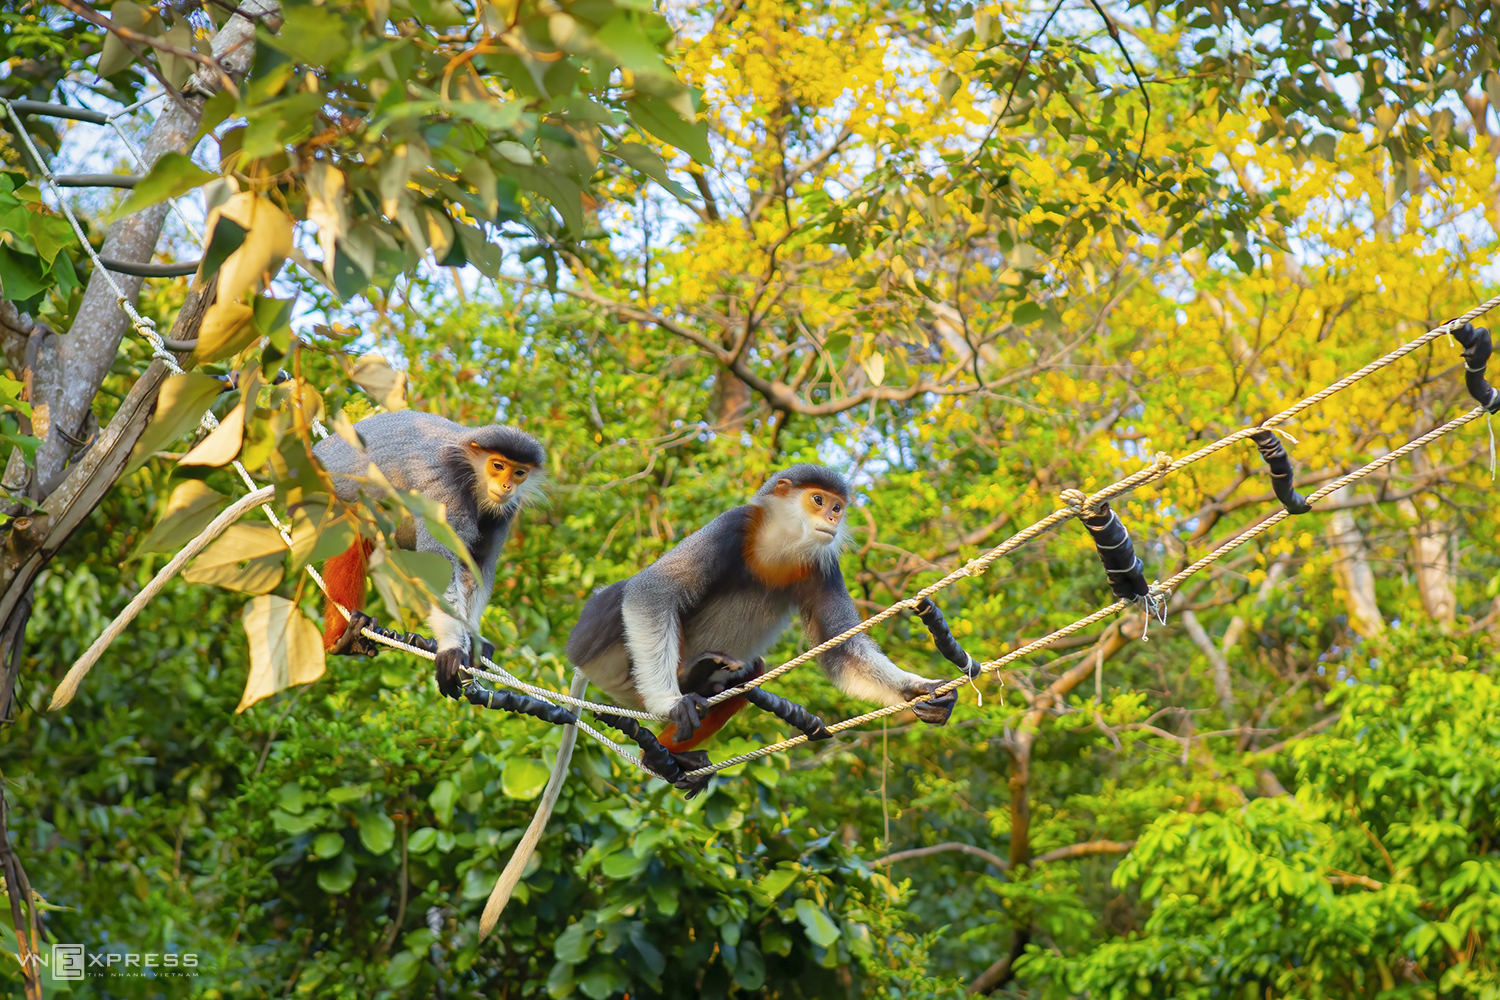 A group of photographers including Vo Rin, Ha Vu Linh and Nguyen Thuy Linh arrived at the forest on April 7. After several hours of waiting, a herd of nine langurs appeared, they ate yellow flower buds and in turn moved across the rope ladder.